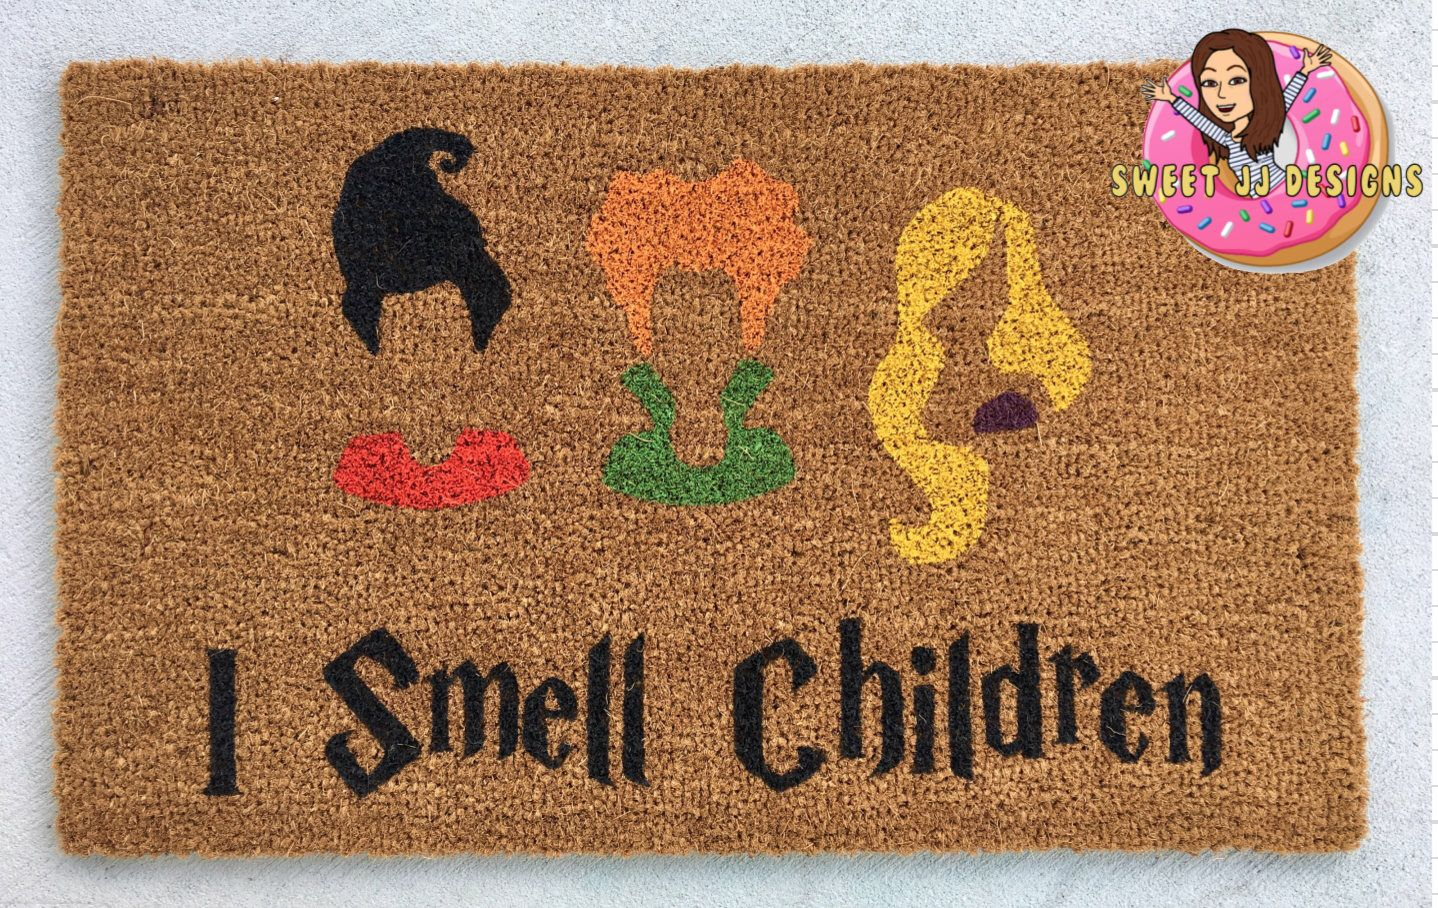 the original hocus pocus doormat, sanderson sisters door mat, i